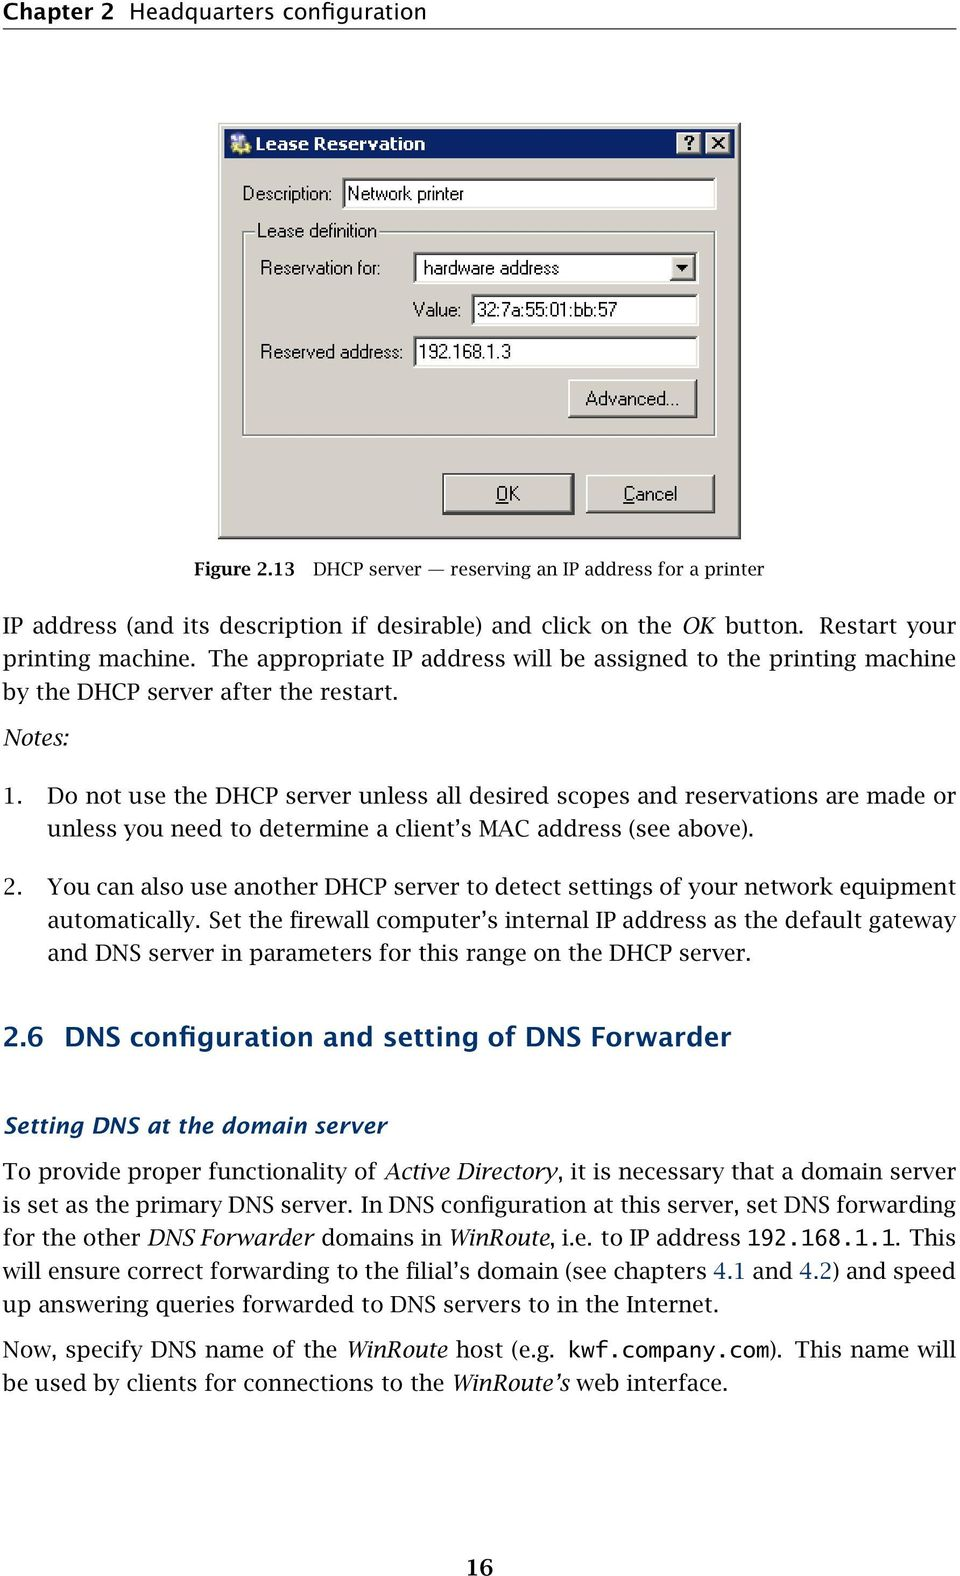 Do not use the DHCP server unless all desired scopes and reservations are made or unless you need to determine a client s MAC address (see above). 2.